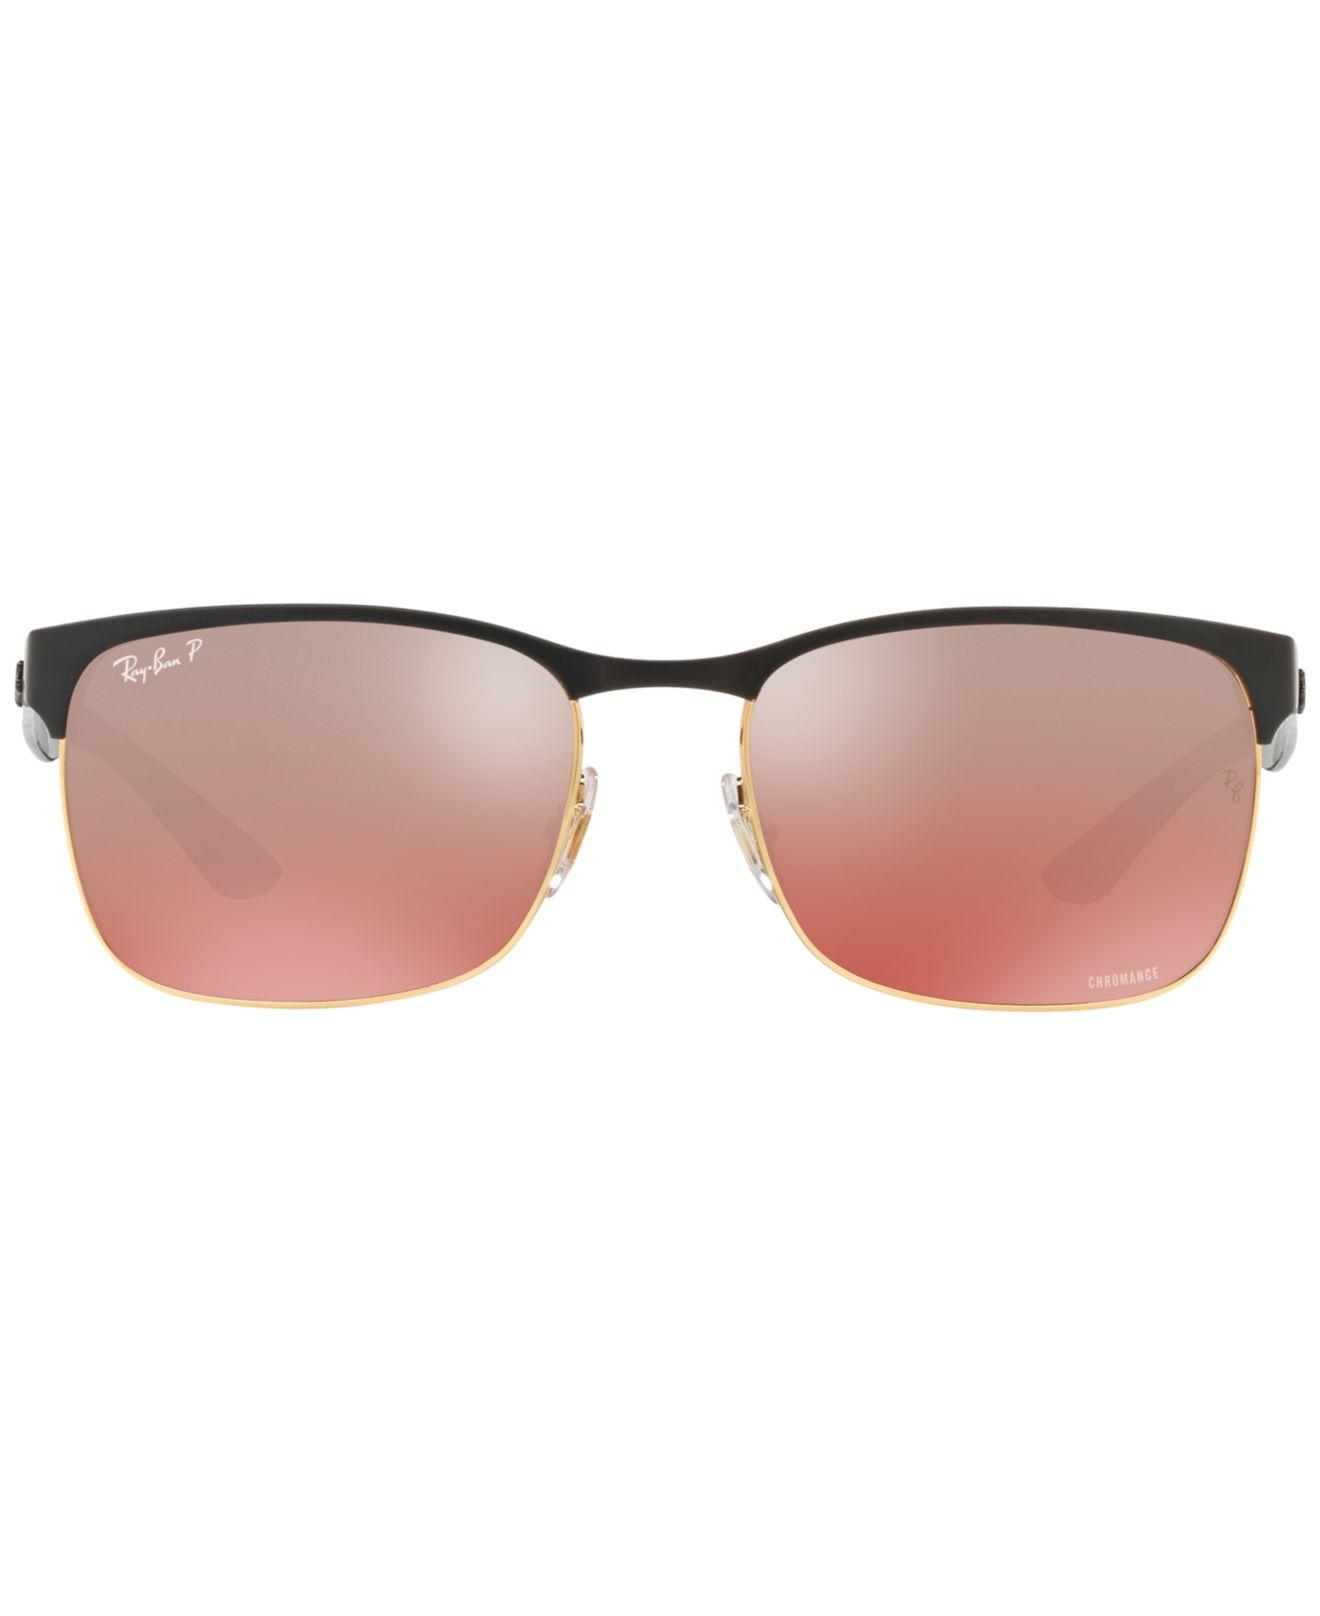 a8004d210a Lyst - Ray-Ban Polarized Sunglasses